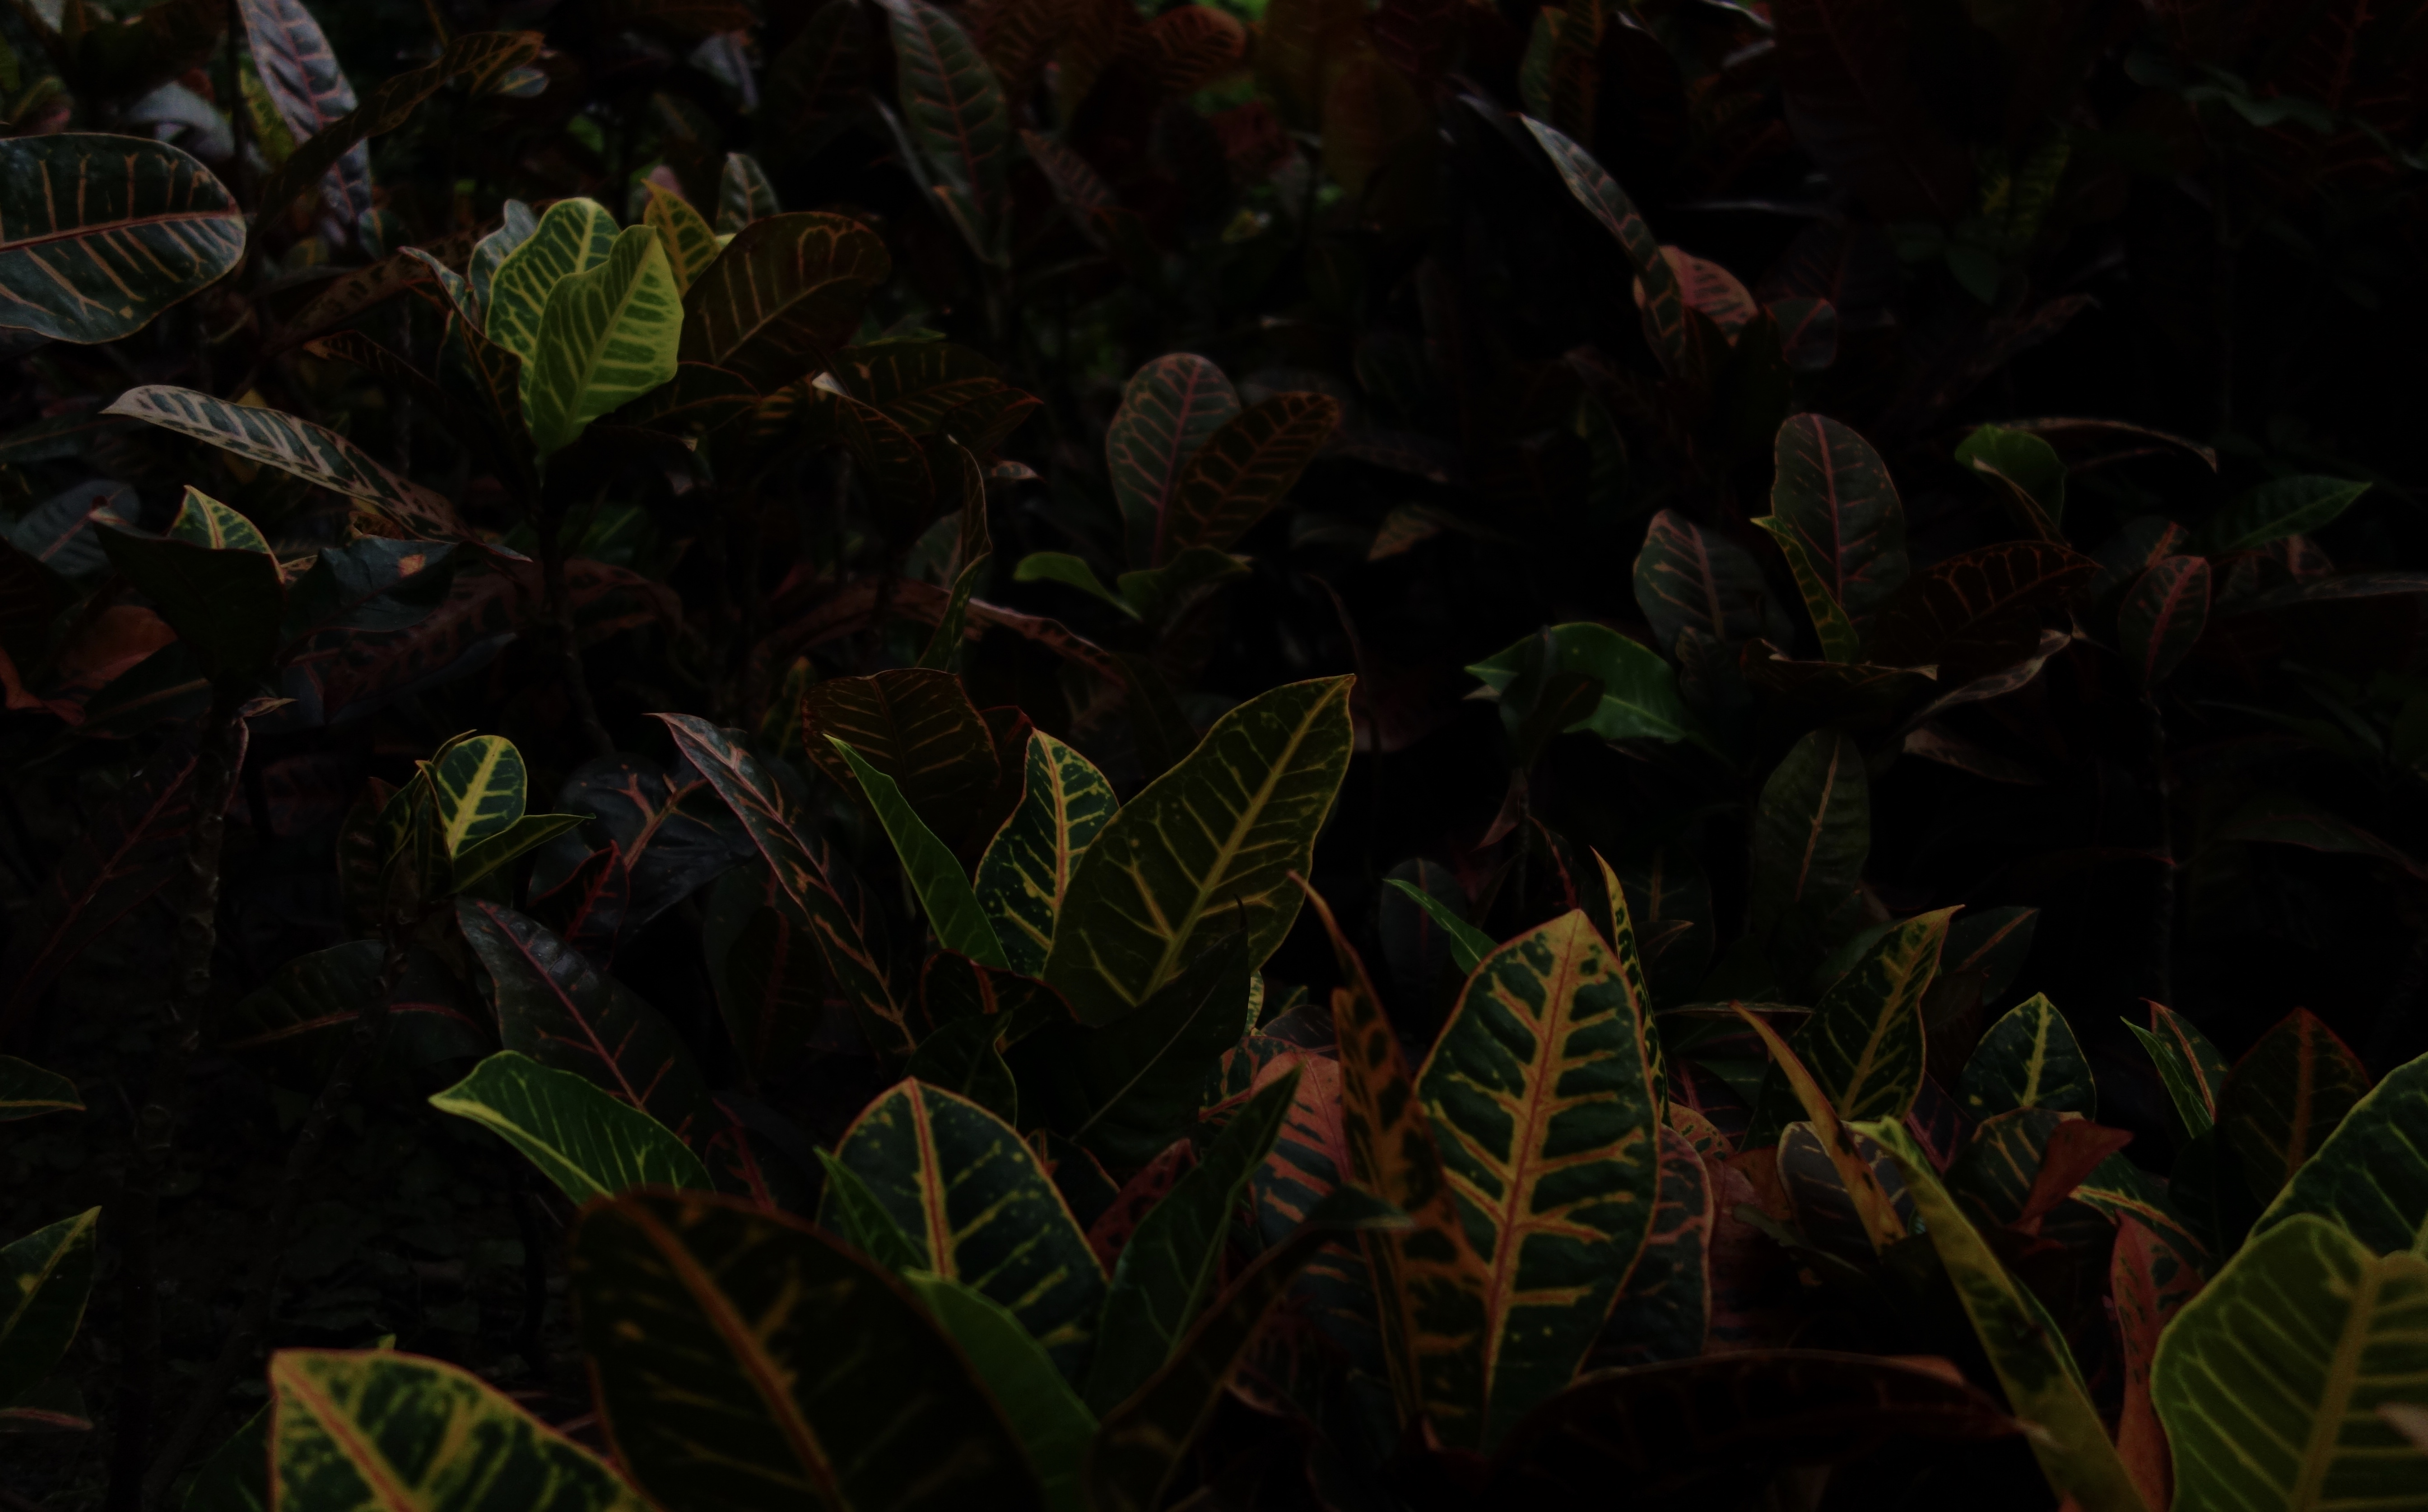 green and brown plant leaves